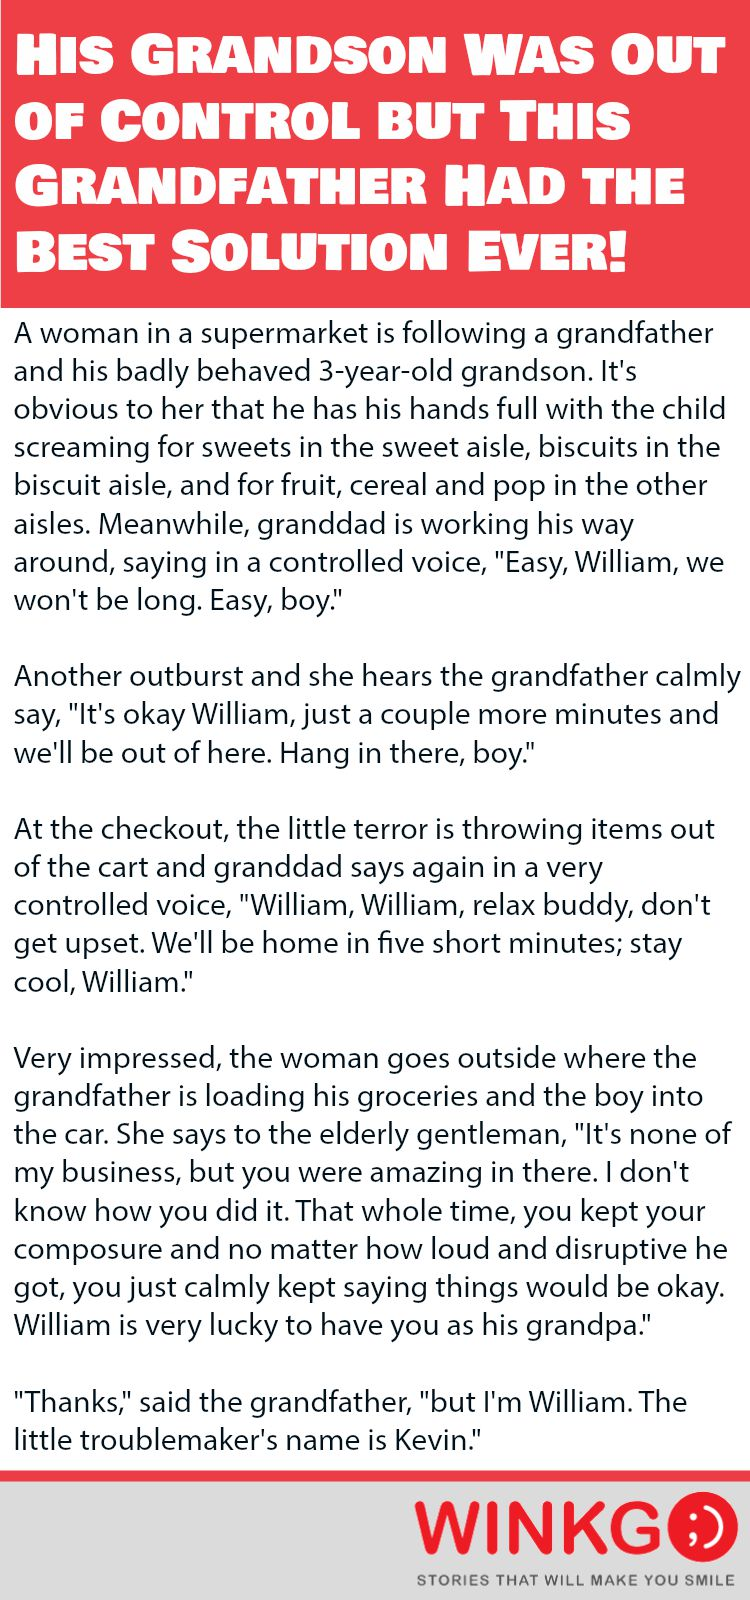 His Grandson Was Out of Control but This Grandfather Had the Best Solution Ever.